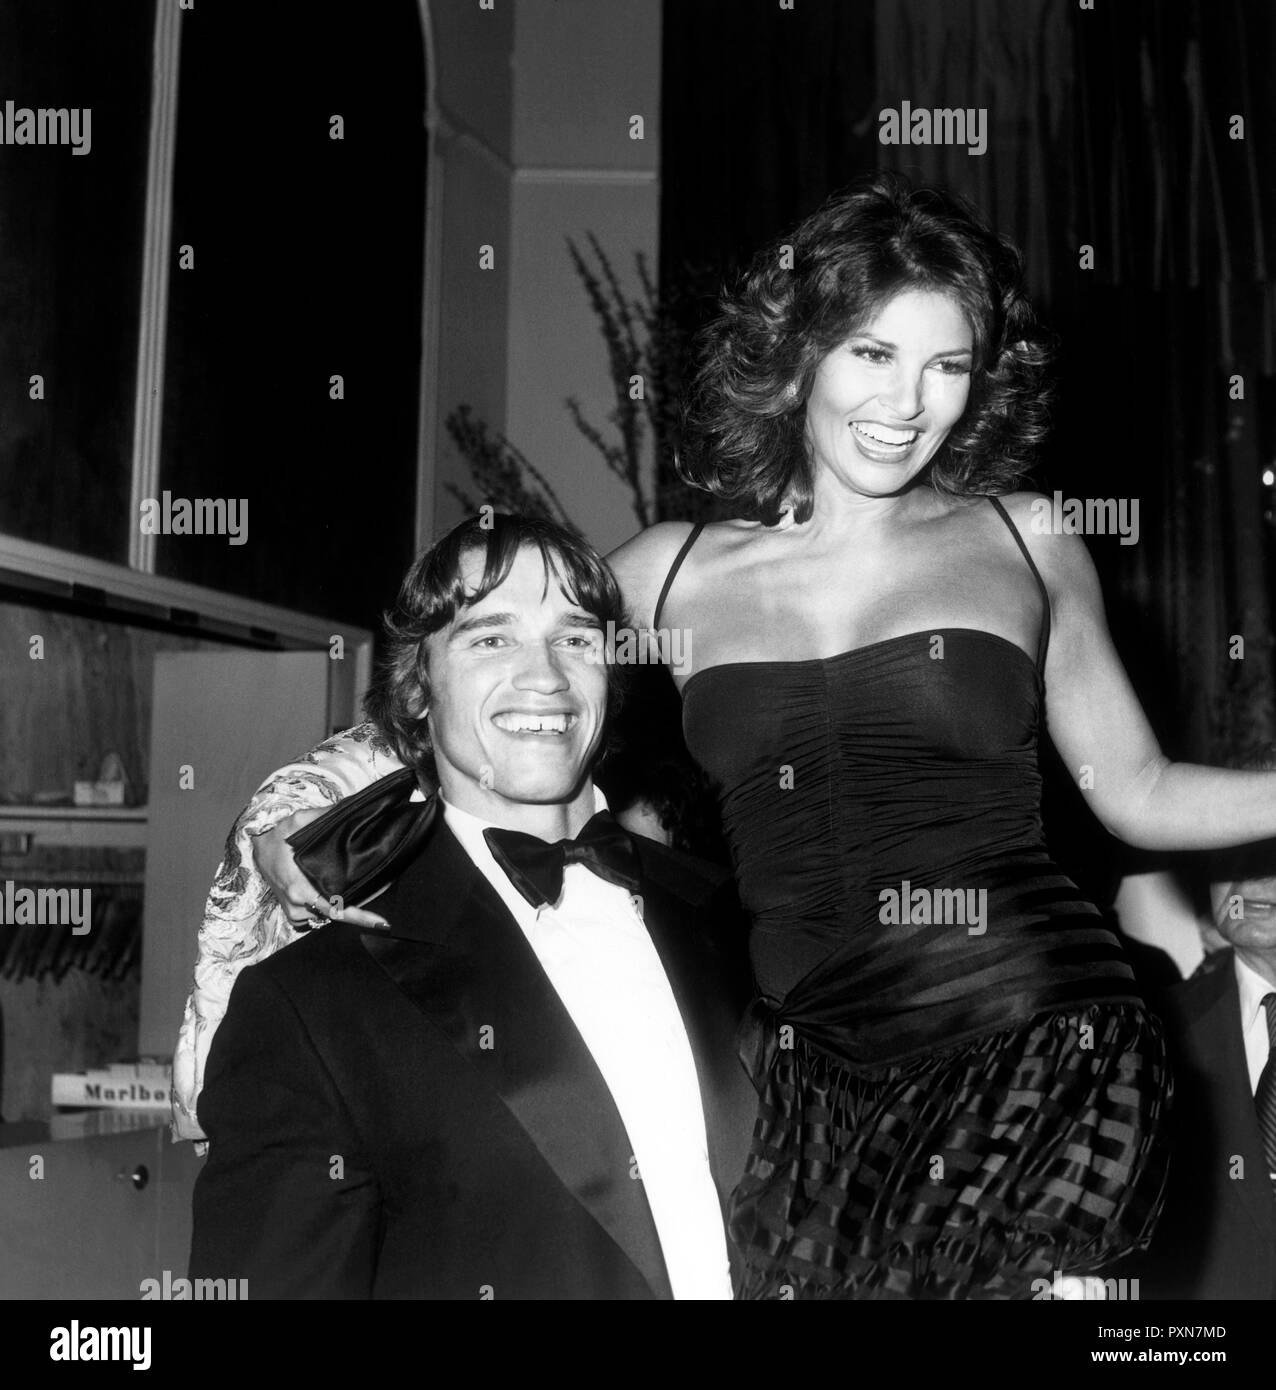 raquel welch and arnold schwarzenegger, 1977 - Stock Image